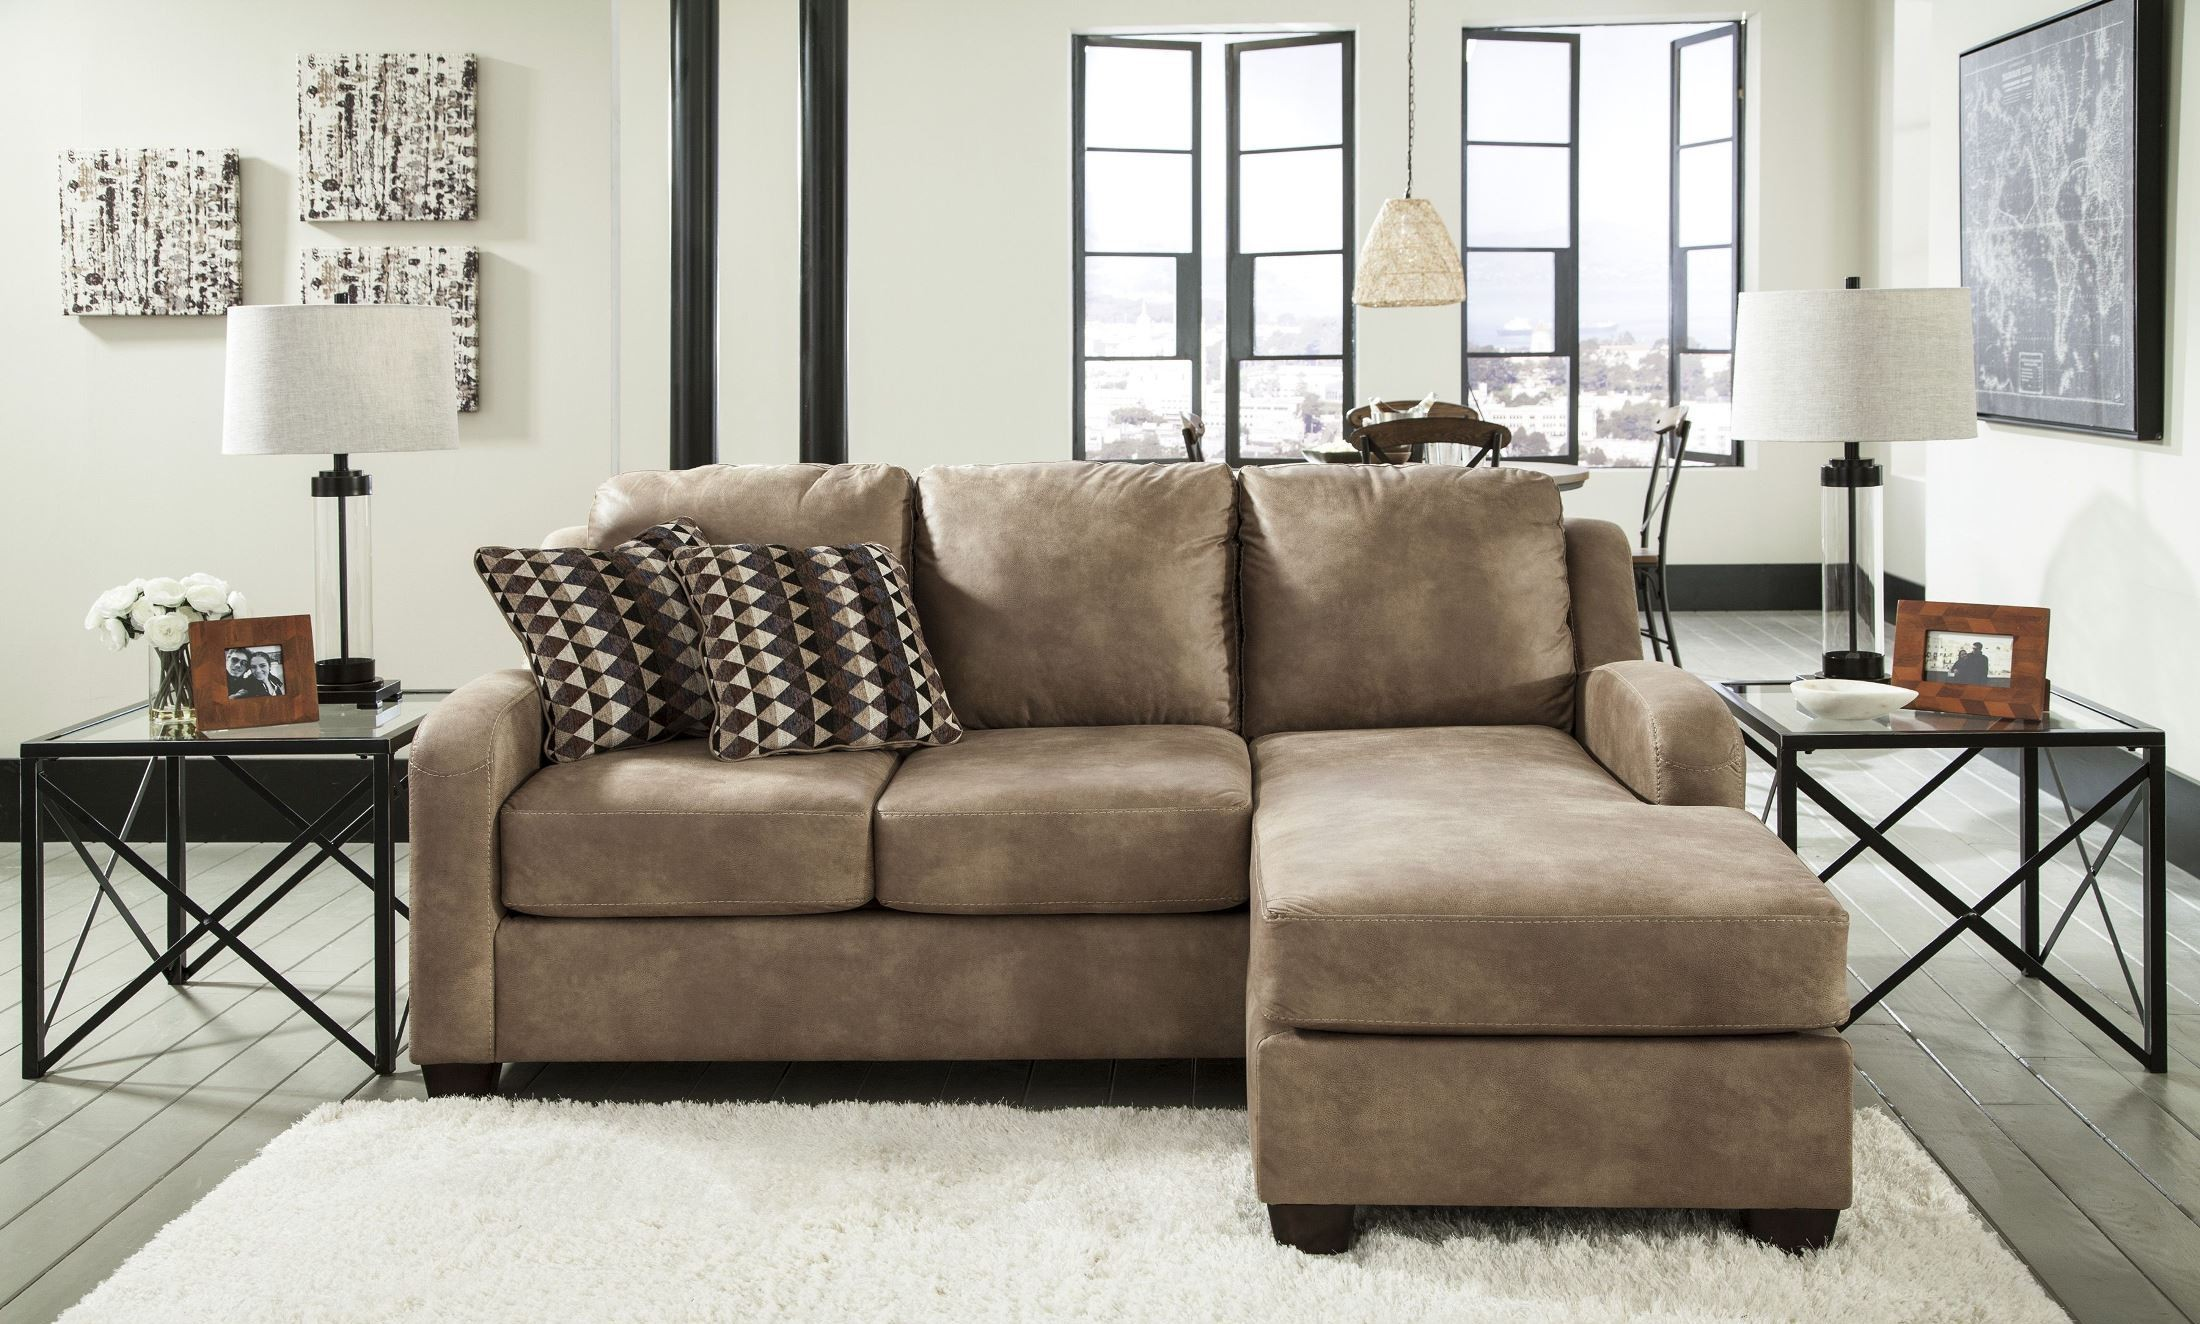 Alturo Dune Sofa Chaise from Ashley